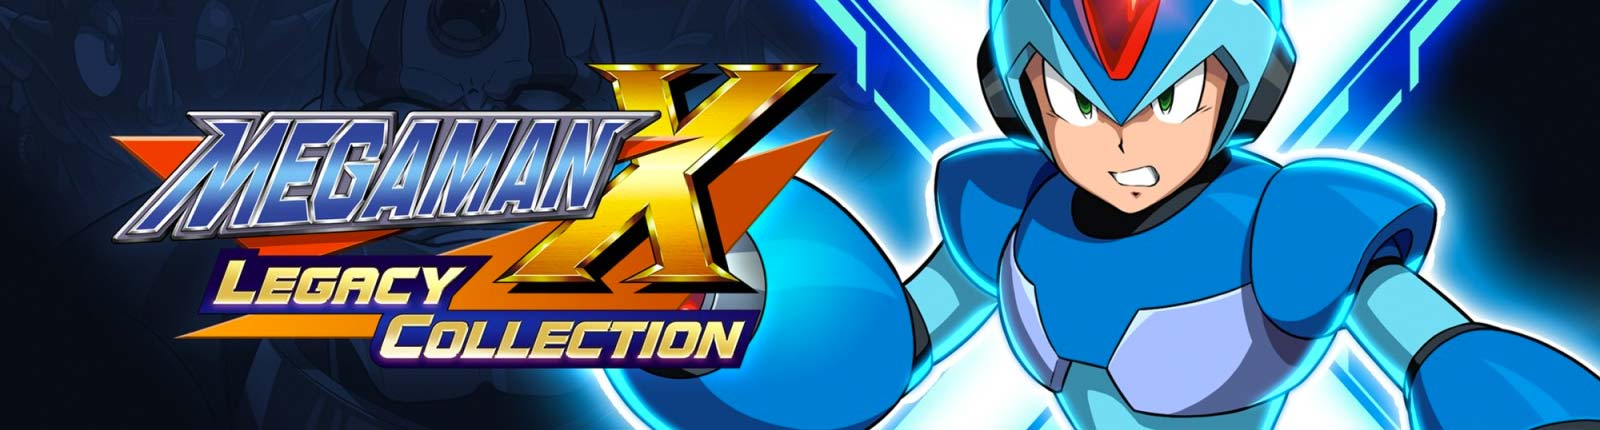 Mega Man X Legacy Collection 1 & 2 Review